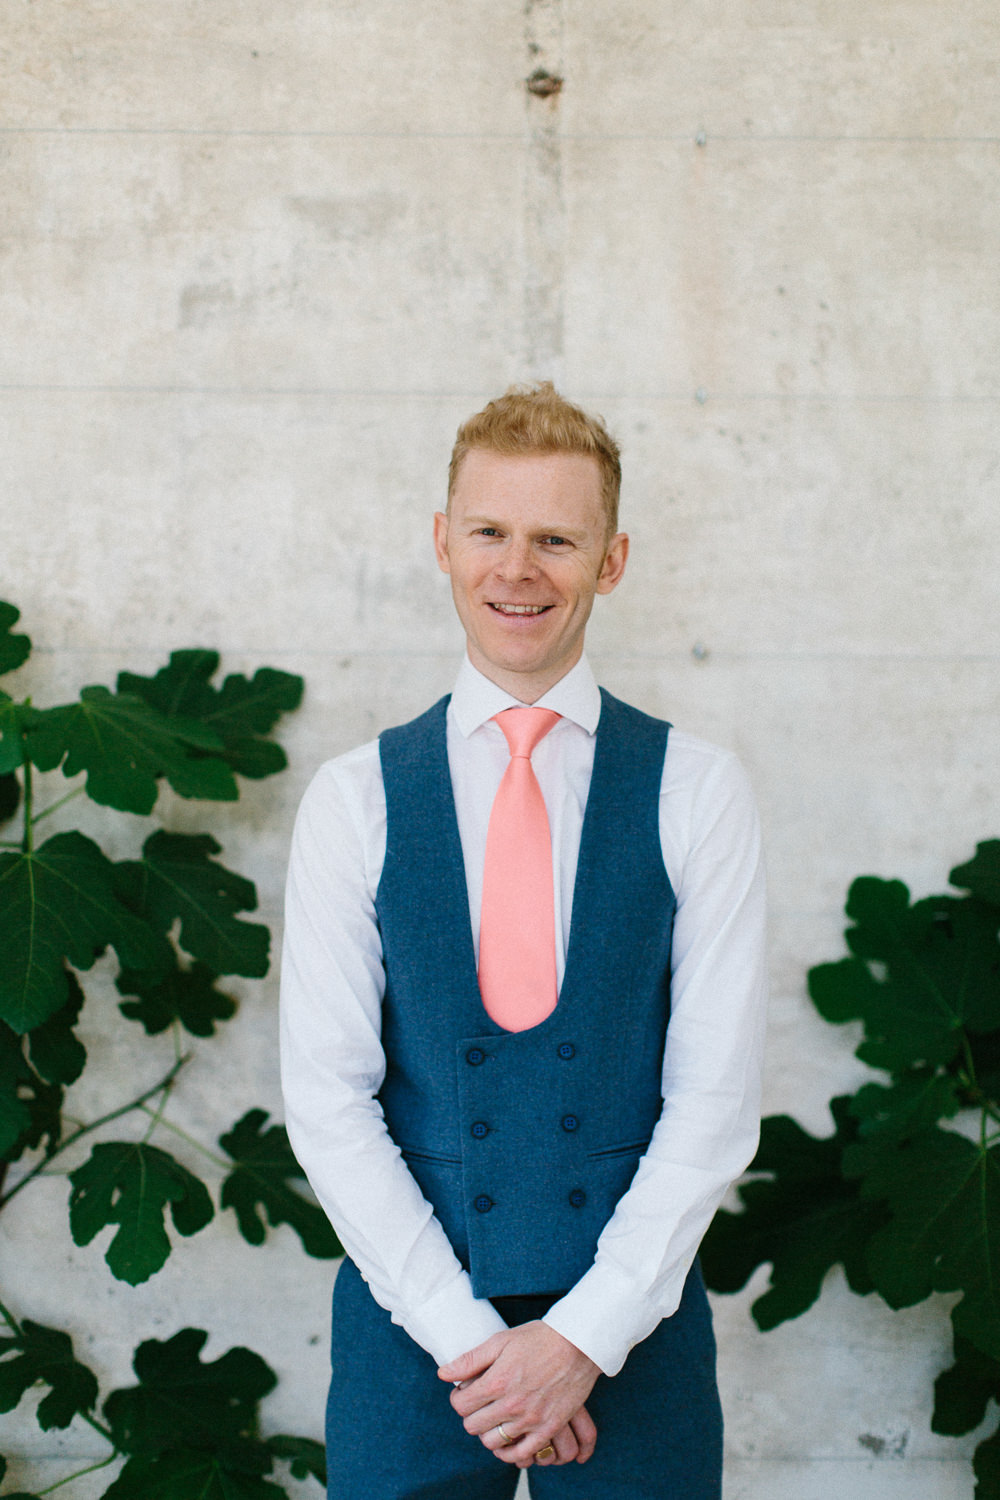 Groom Bib Waistcoat Coral Tie Blue Suit Garden Ceremony Wedding Melissa Beattie Photography